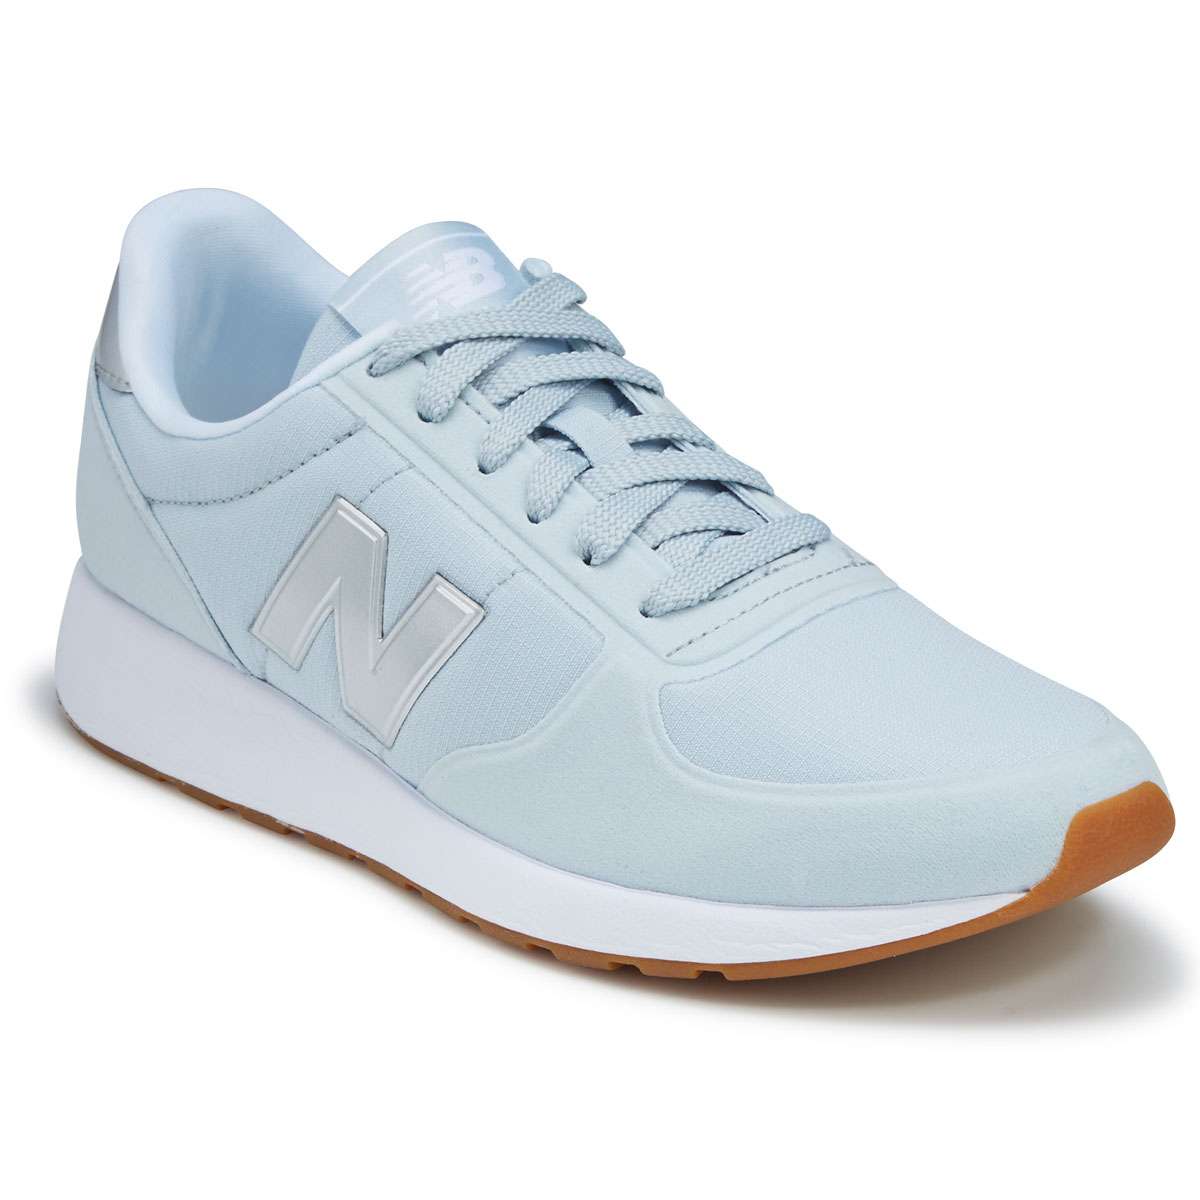 New Balance Women's 215V1 Sneakers - Blue, 7